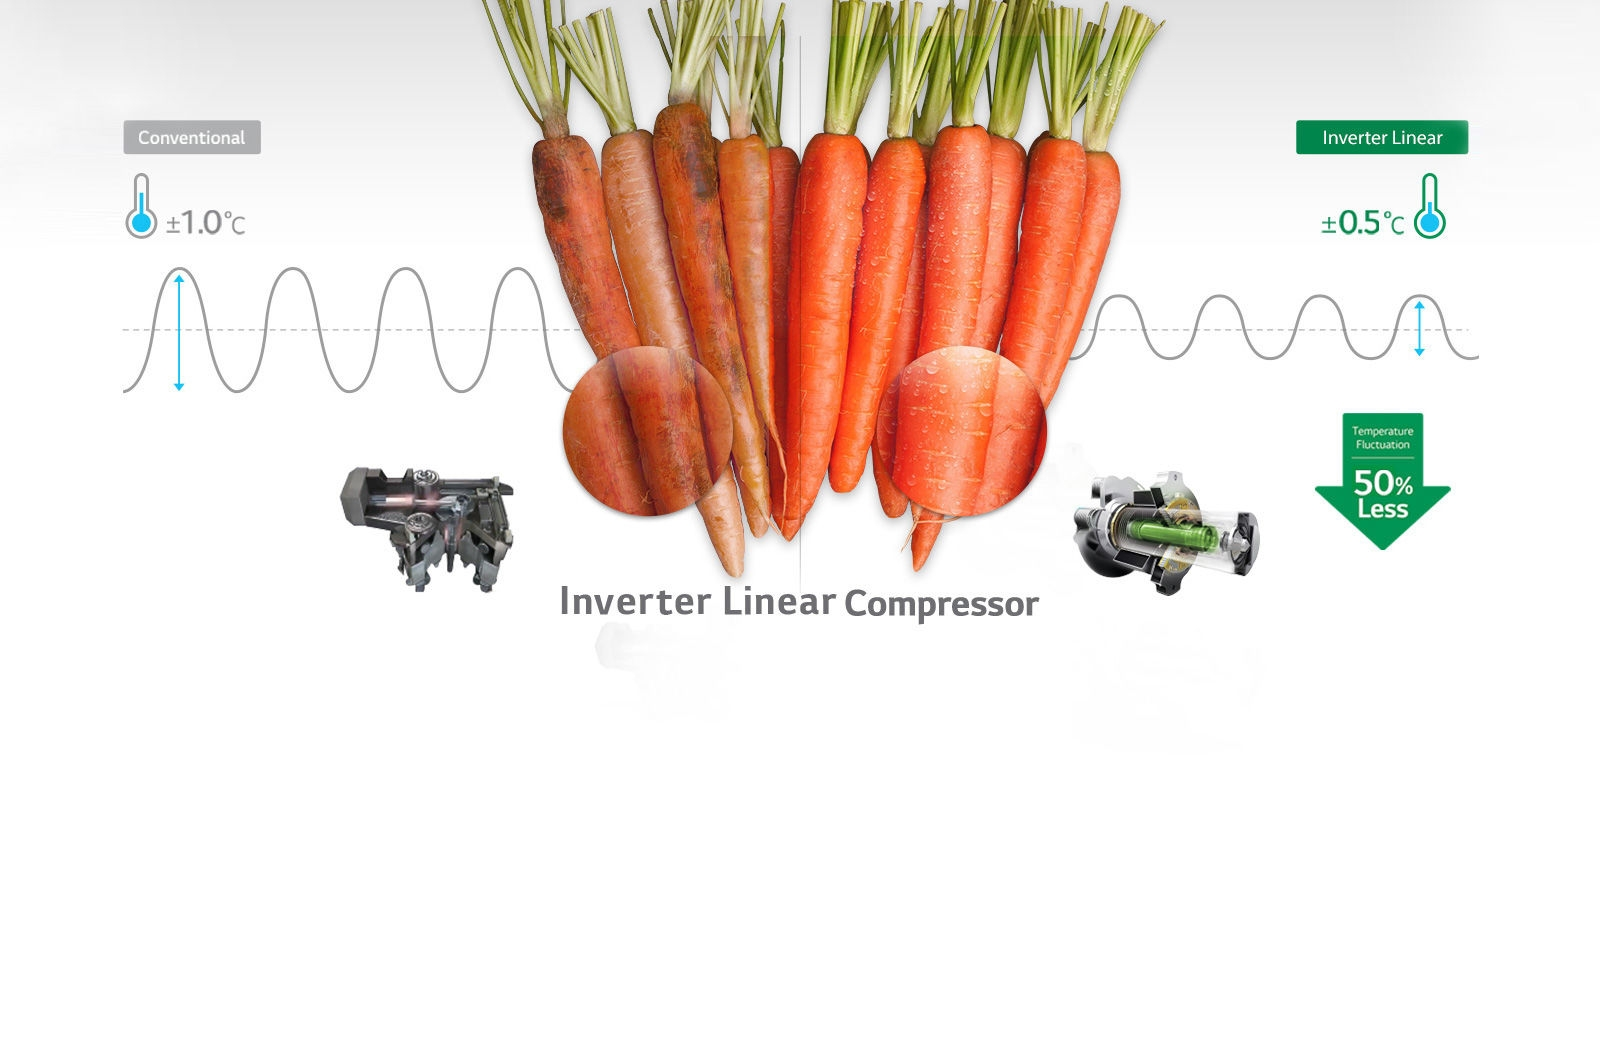 Inverter Linear Compressor